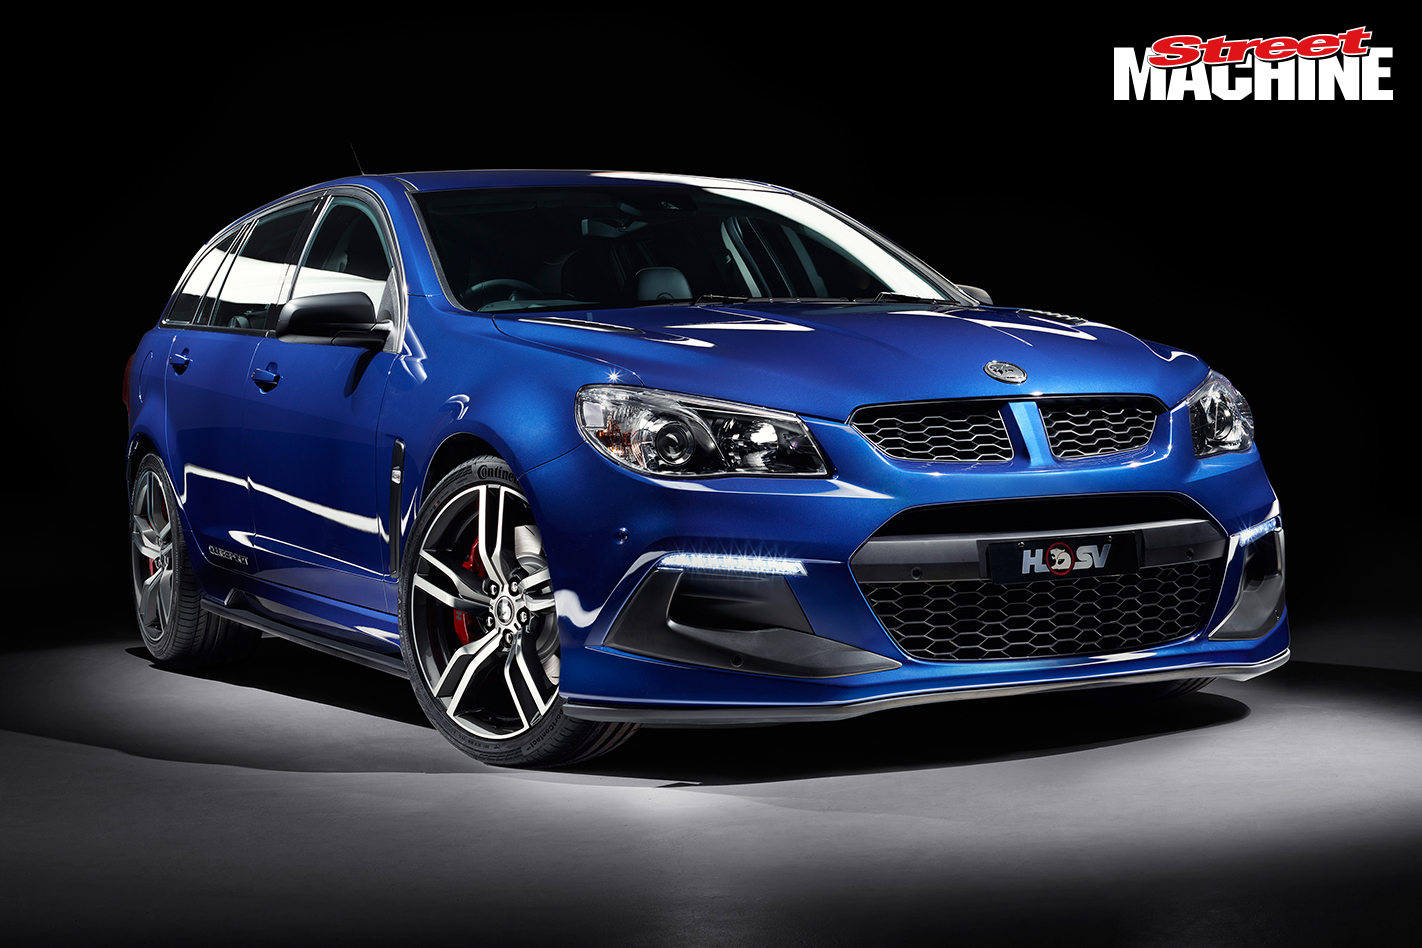 2001 holden hsv maloo ute concept choice image hd cars wallpaper 2003 holden hsv avalanche choice image hd cars wallpaper 2001 holden hsv maloo ute concept choice vanachro Image collections